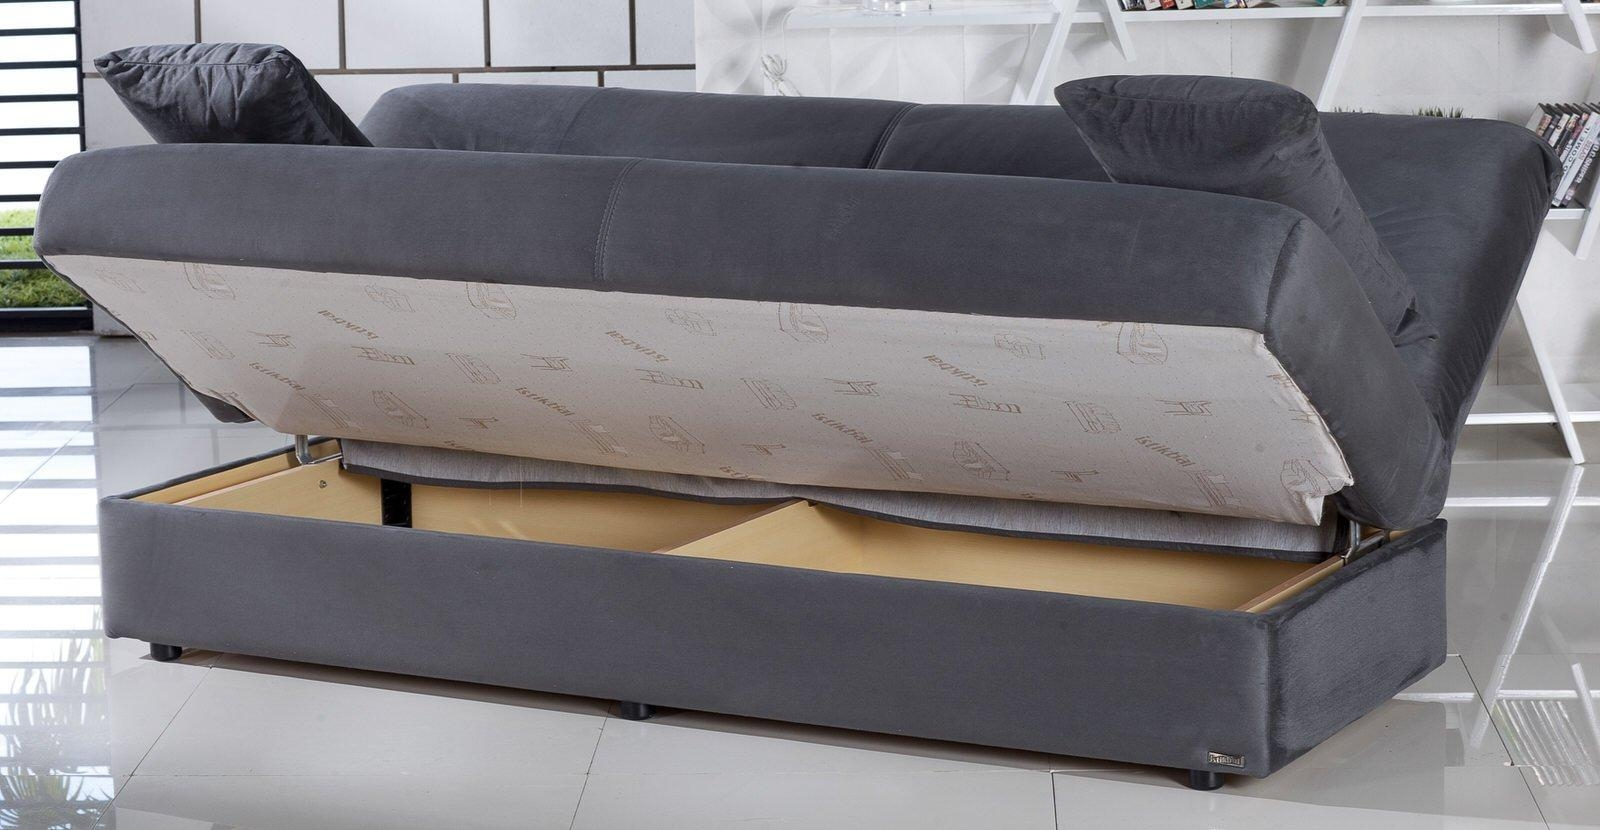 Sofa Convertible Bed With Storage Serta Traditional German Made Intended For Sofa Convertibles (Image 17 of 20)